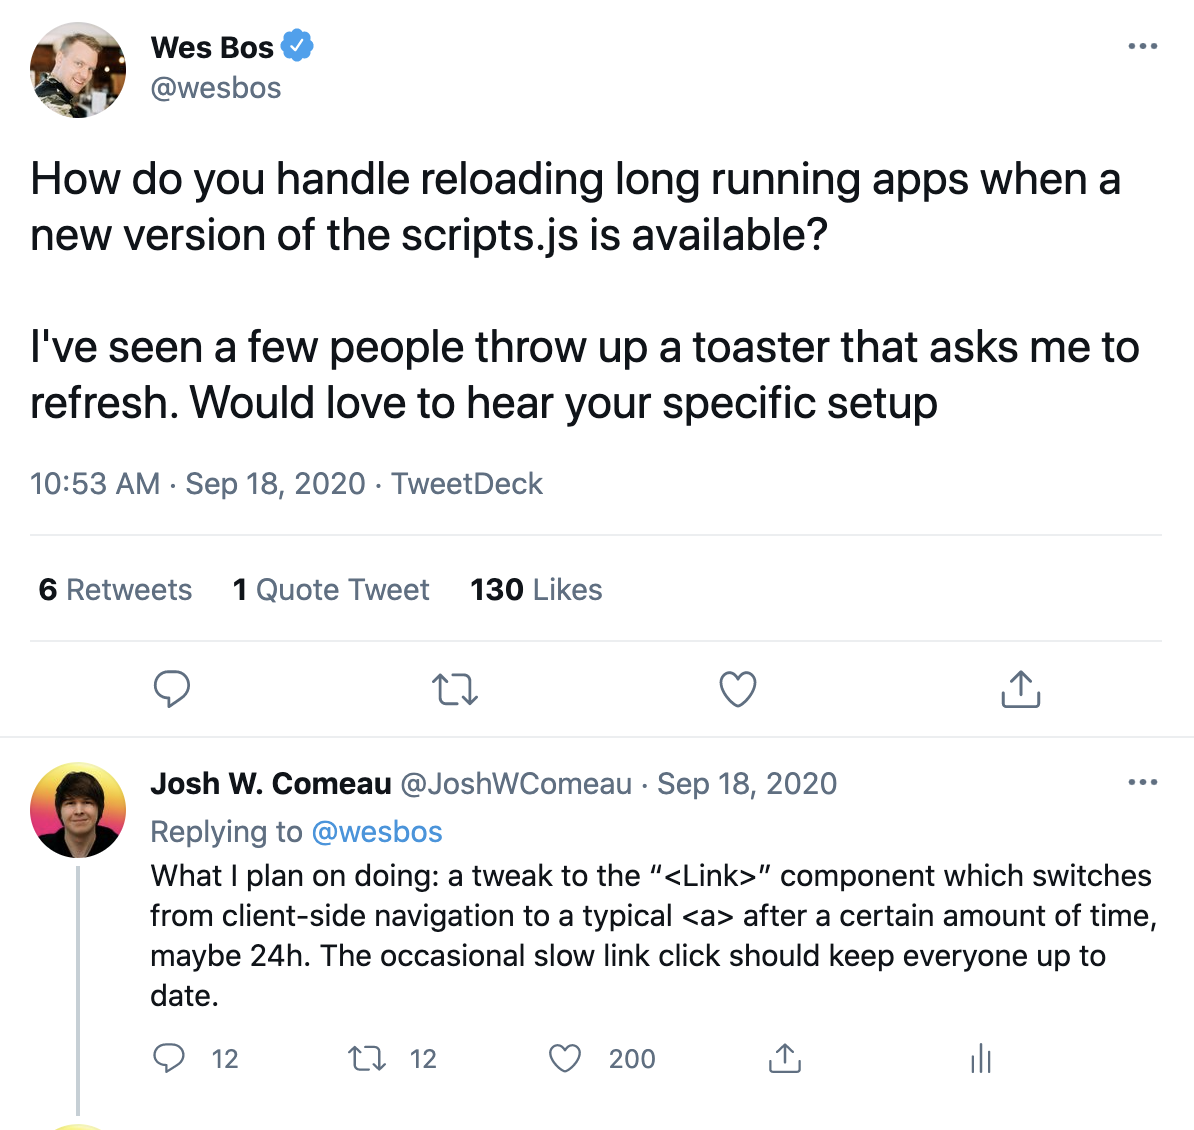 A tweet from Wes Bos asking about stale JS bundles